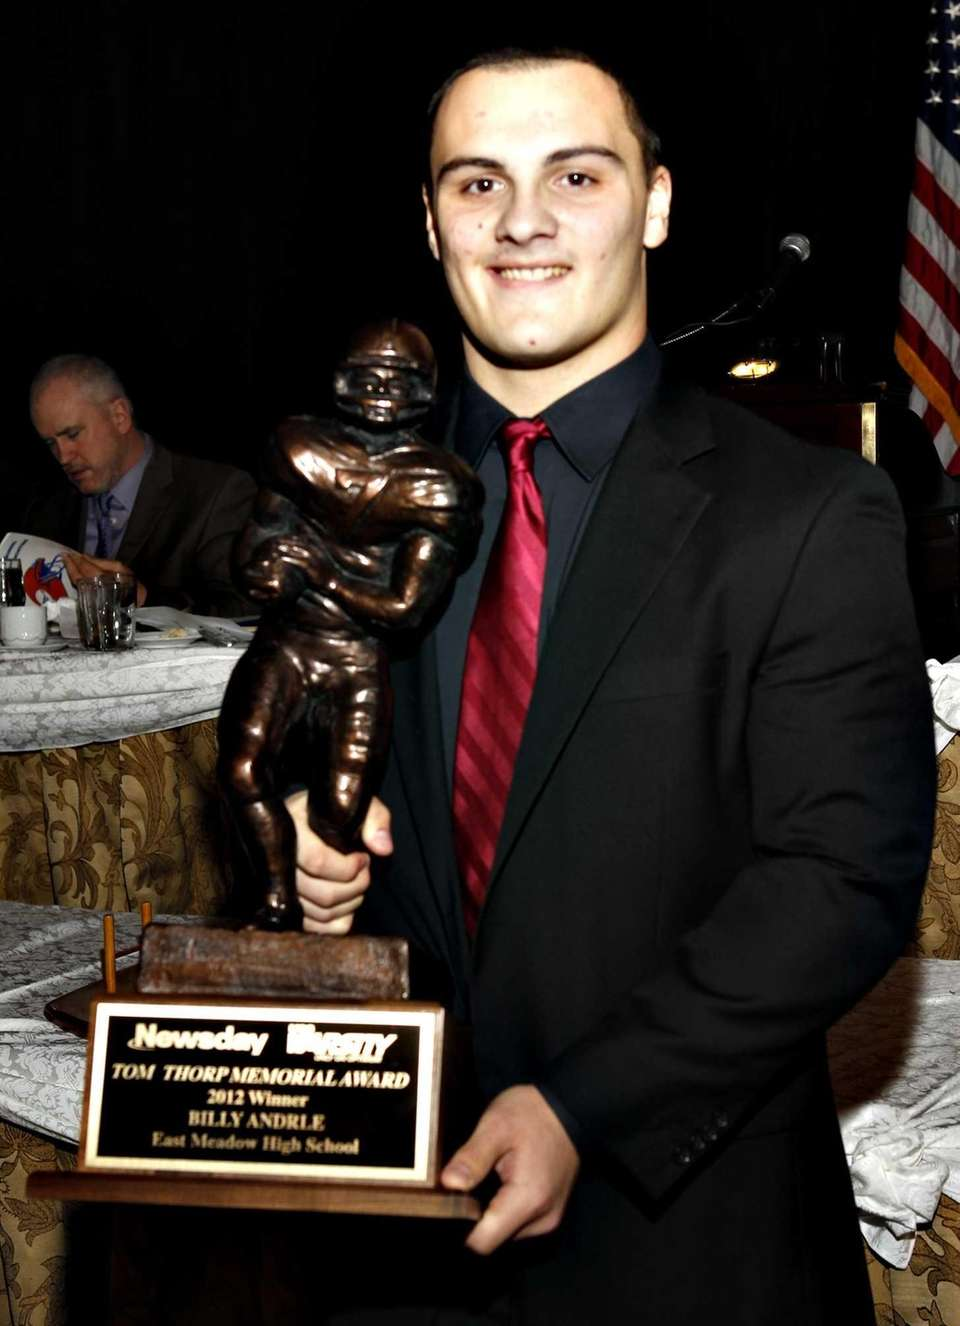 The 2012 Thorp Award winner for most outstanding